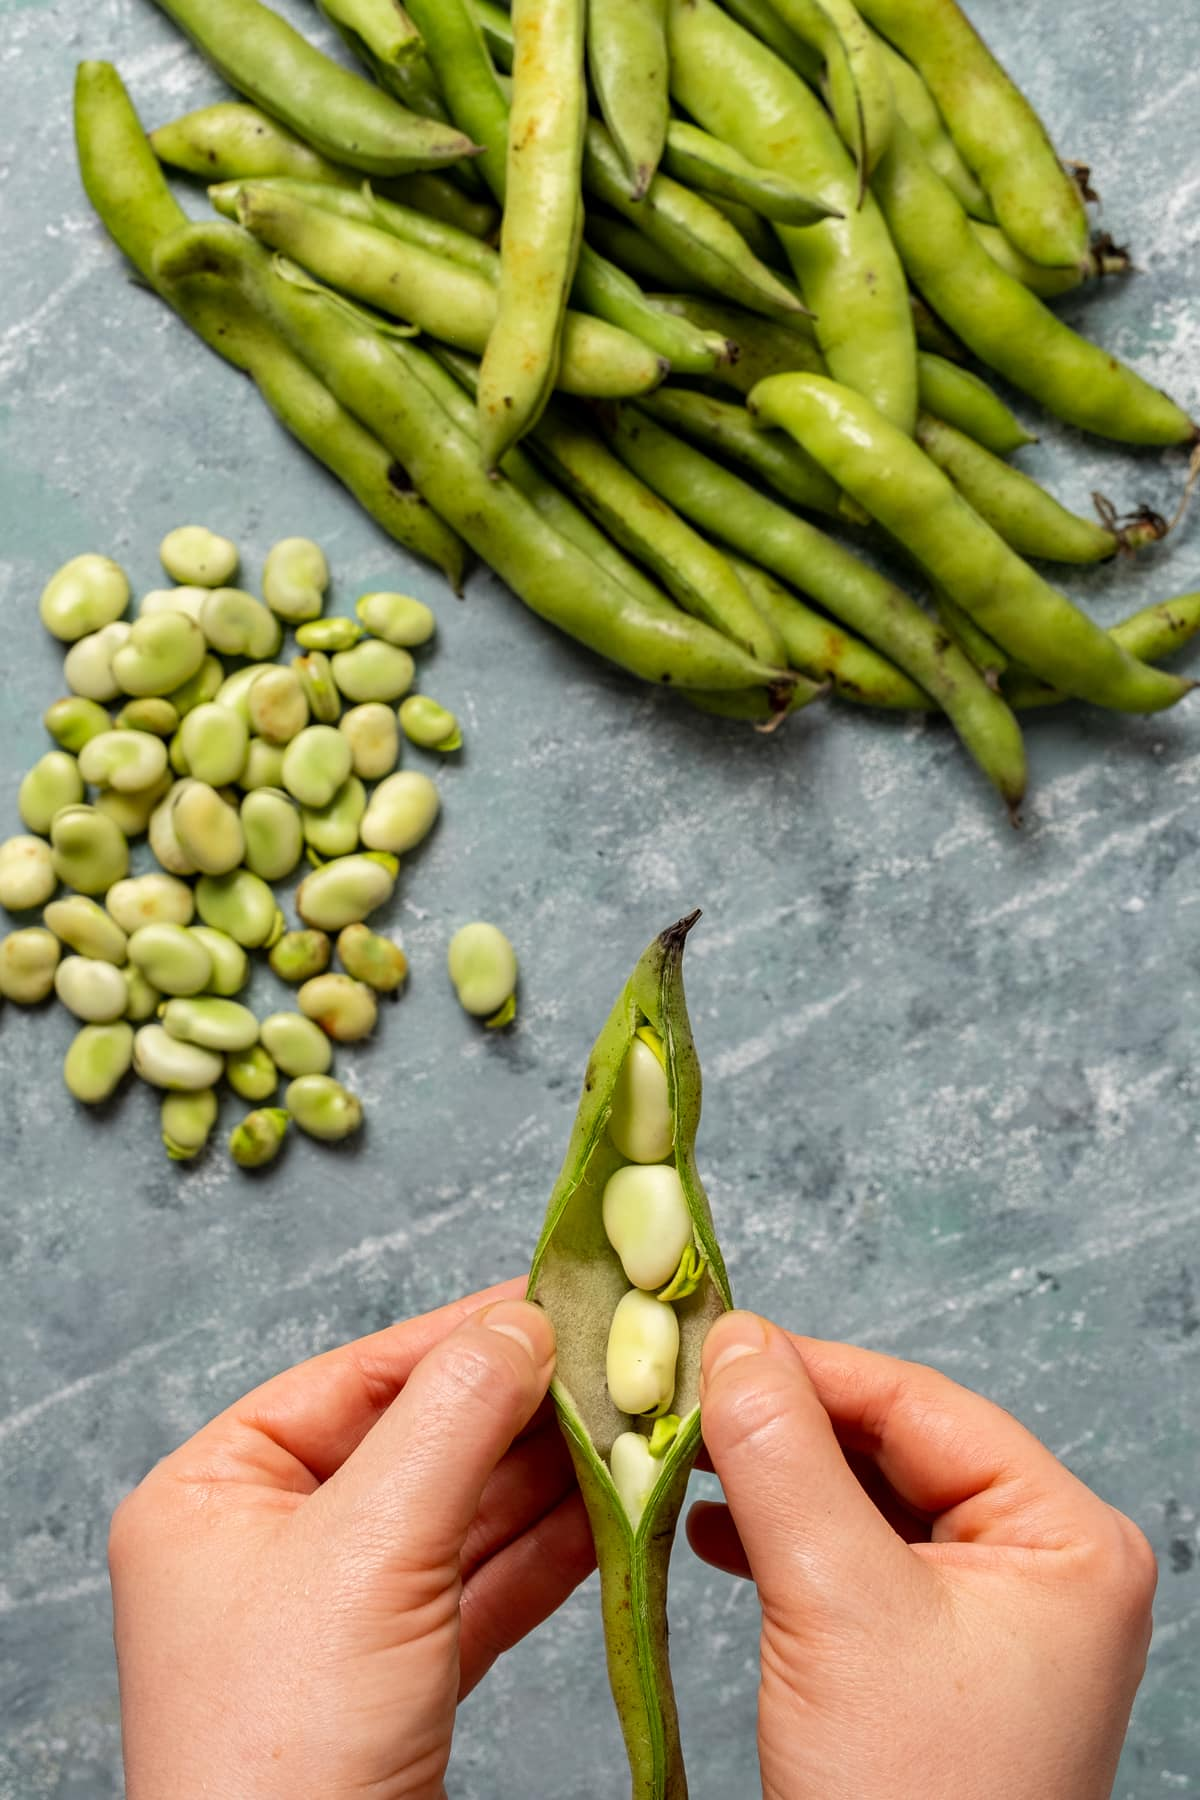 Hands removing fava beans from their pod, more fava bean pods and beans on the background.